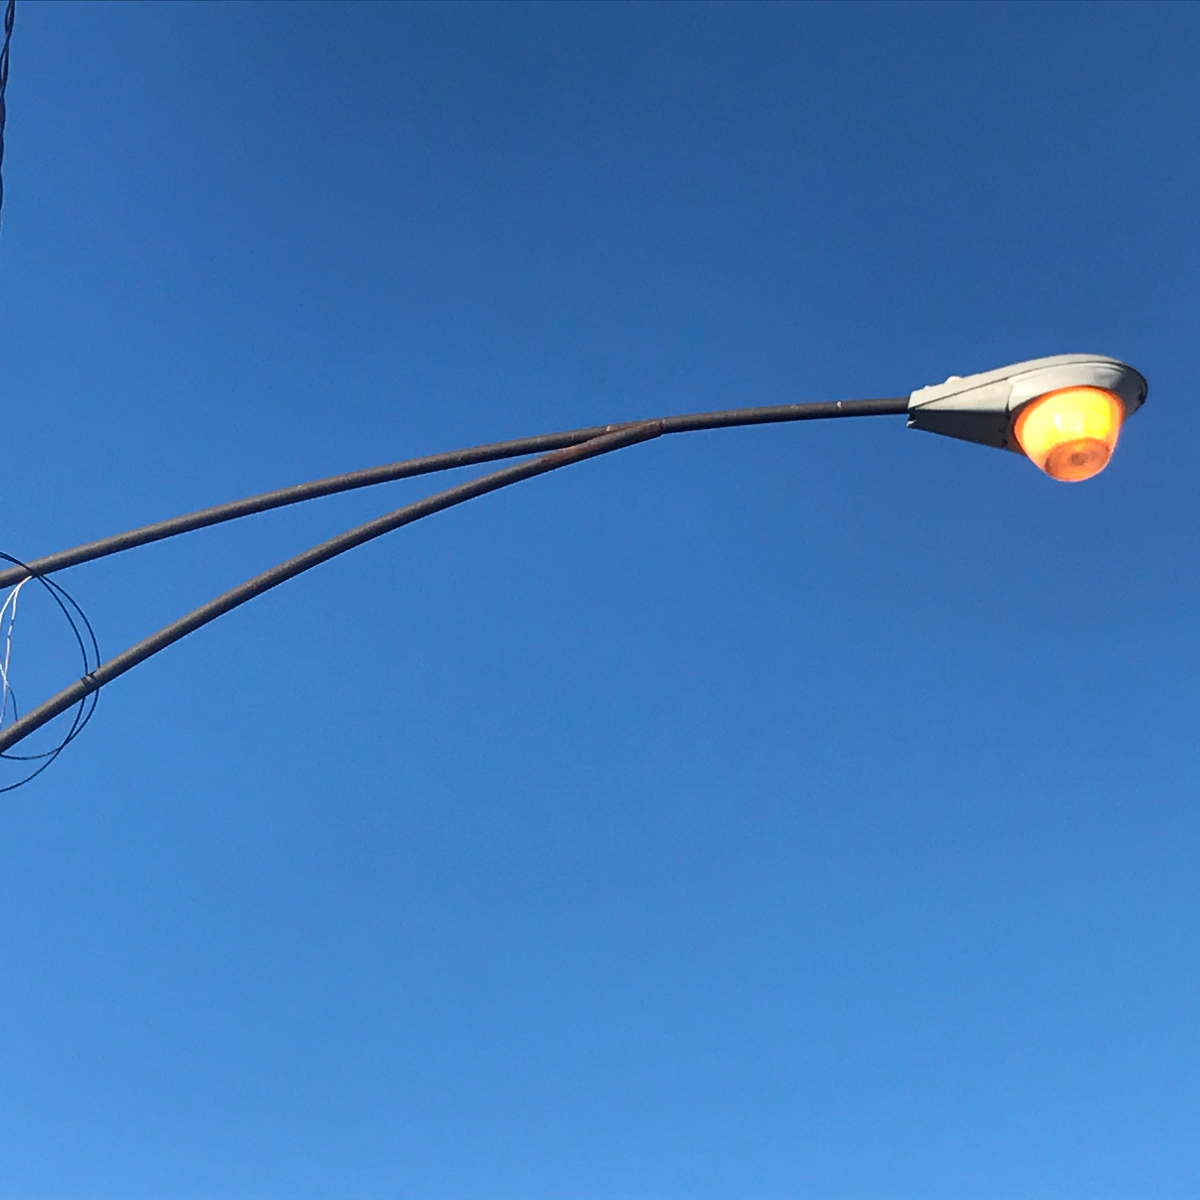 Experts Warn Of Health Risks As Chicago Switches To LED Streetlights | WBEZ & Experts Warn Of Health Risks As Chicago Switches To LED Streetlights ...